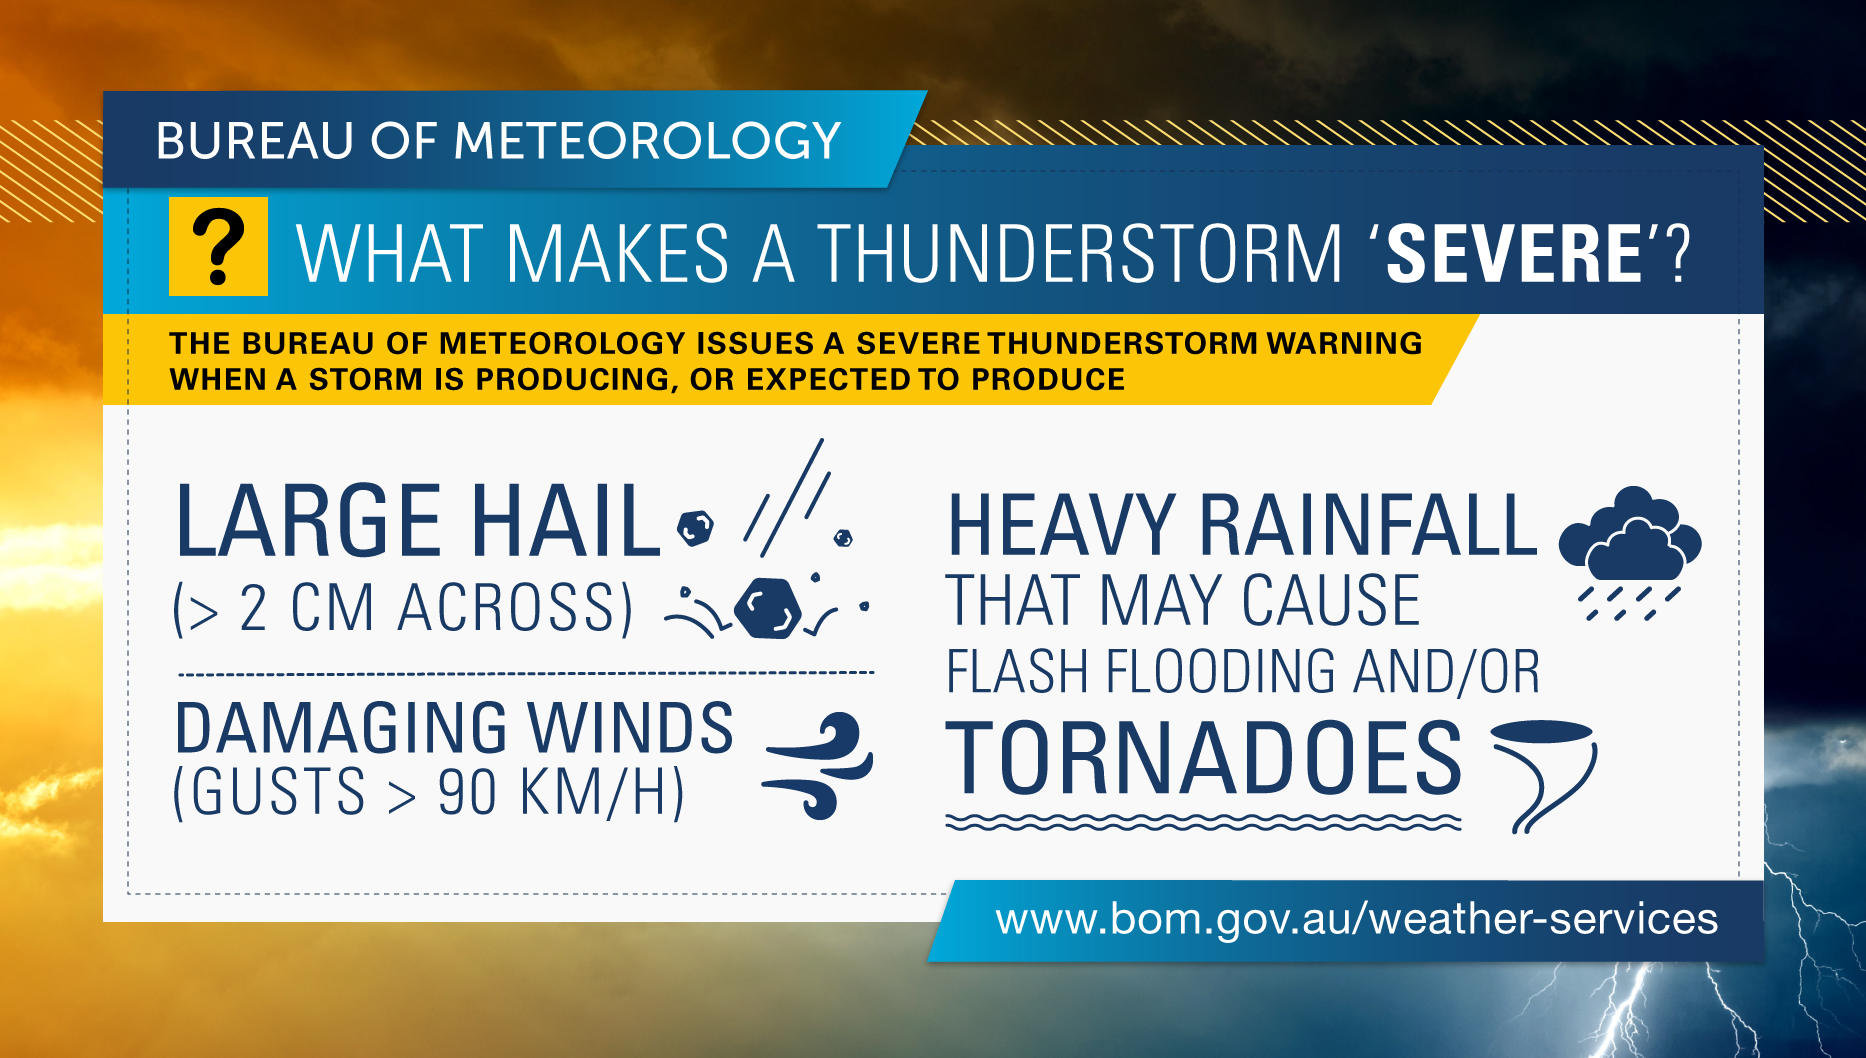 Graphic showing criteria for a severe thunderstorm, outlined in text above.